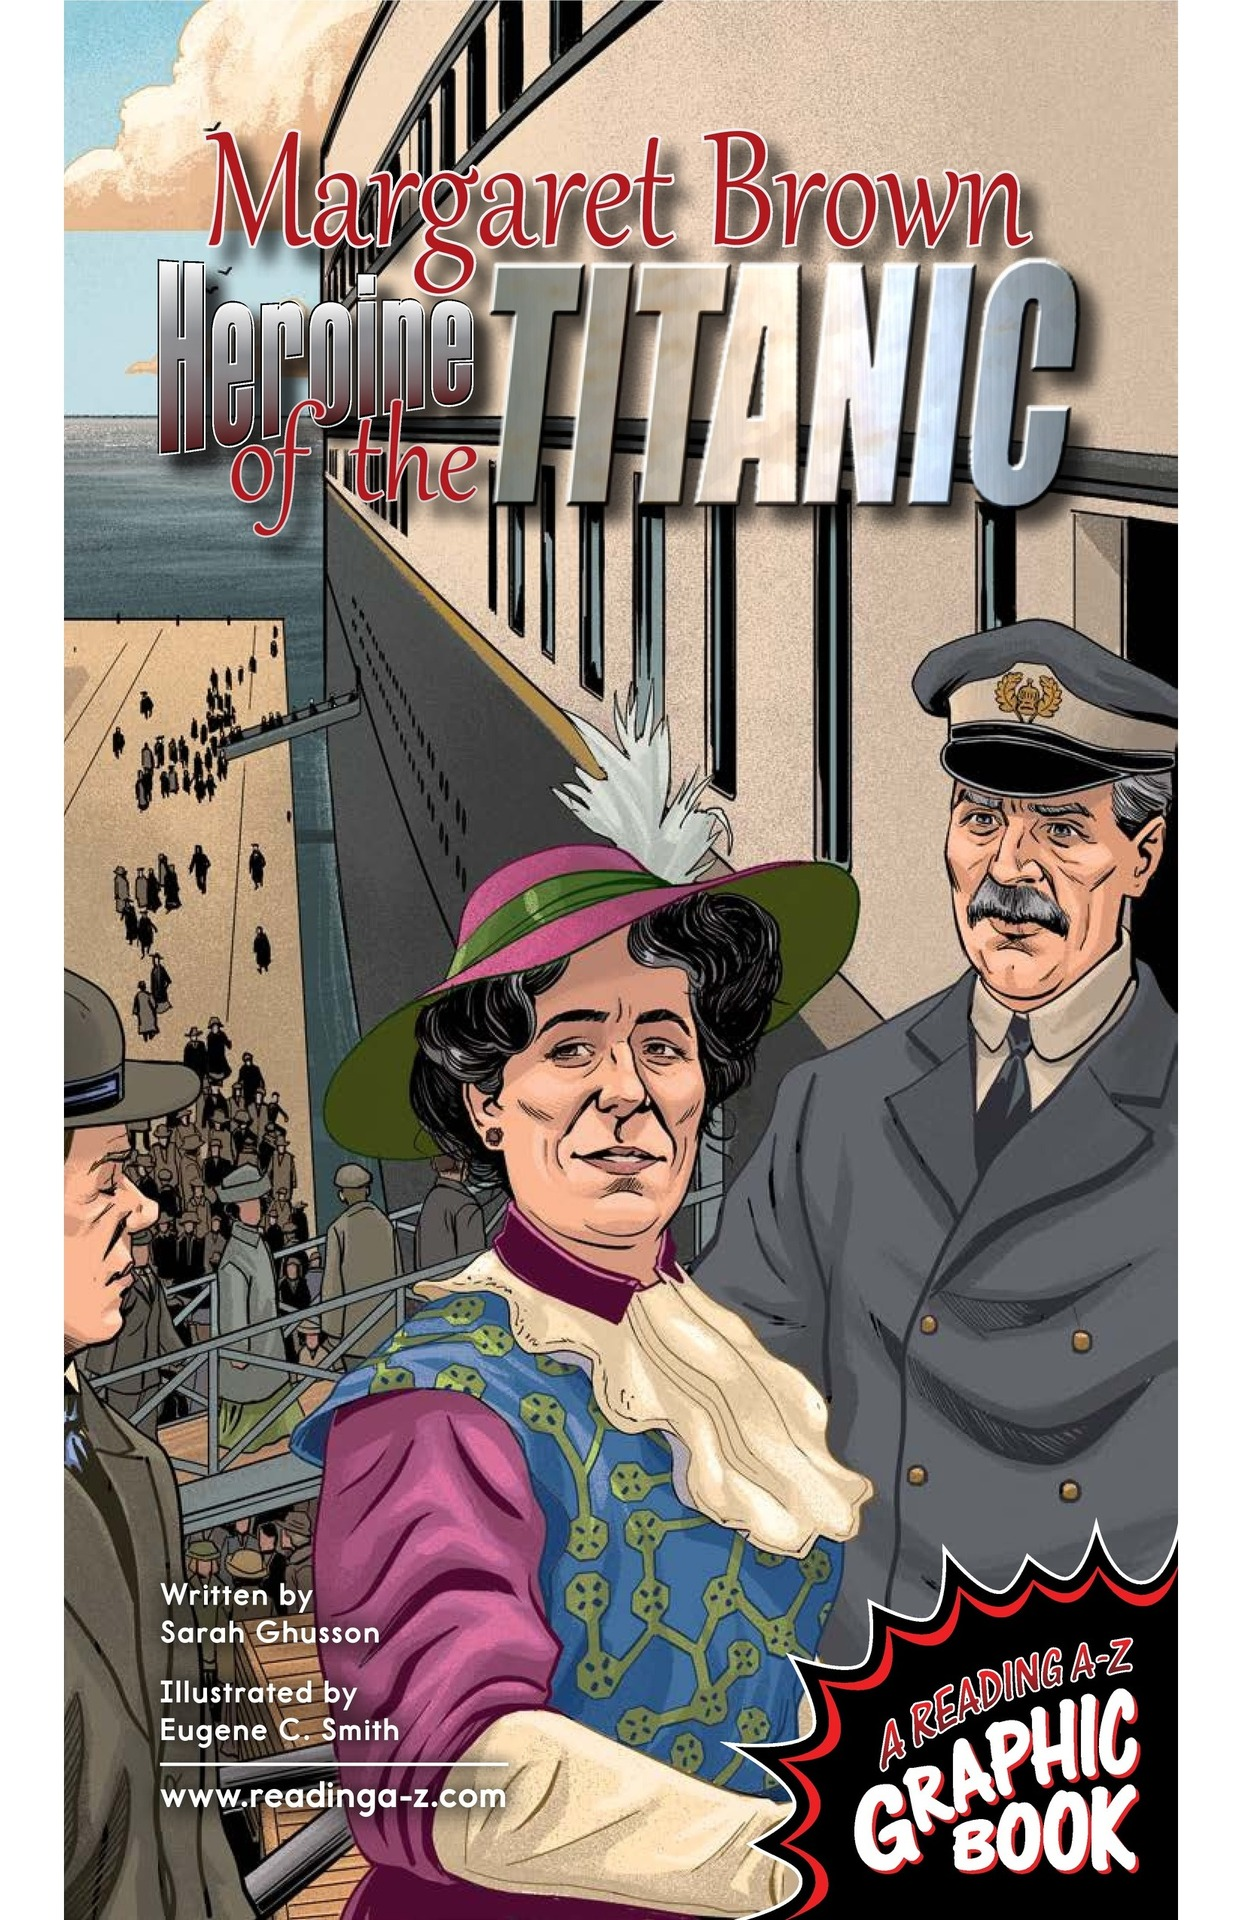 Book Preview For Margaret Brown: Heroine of the Titanic Page 1